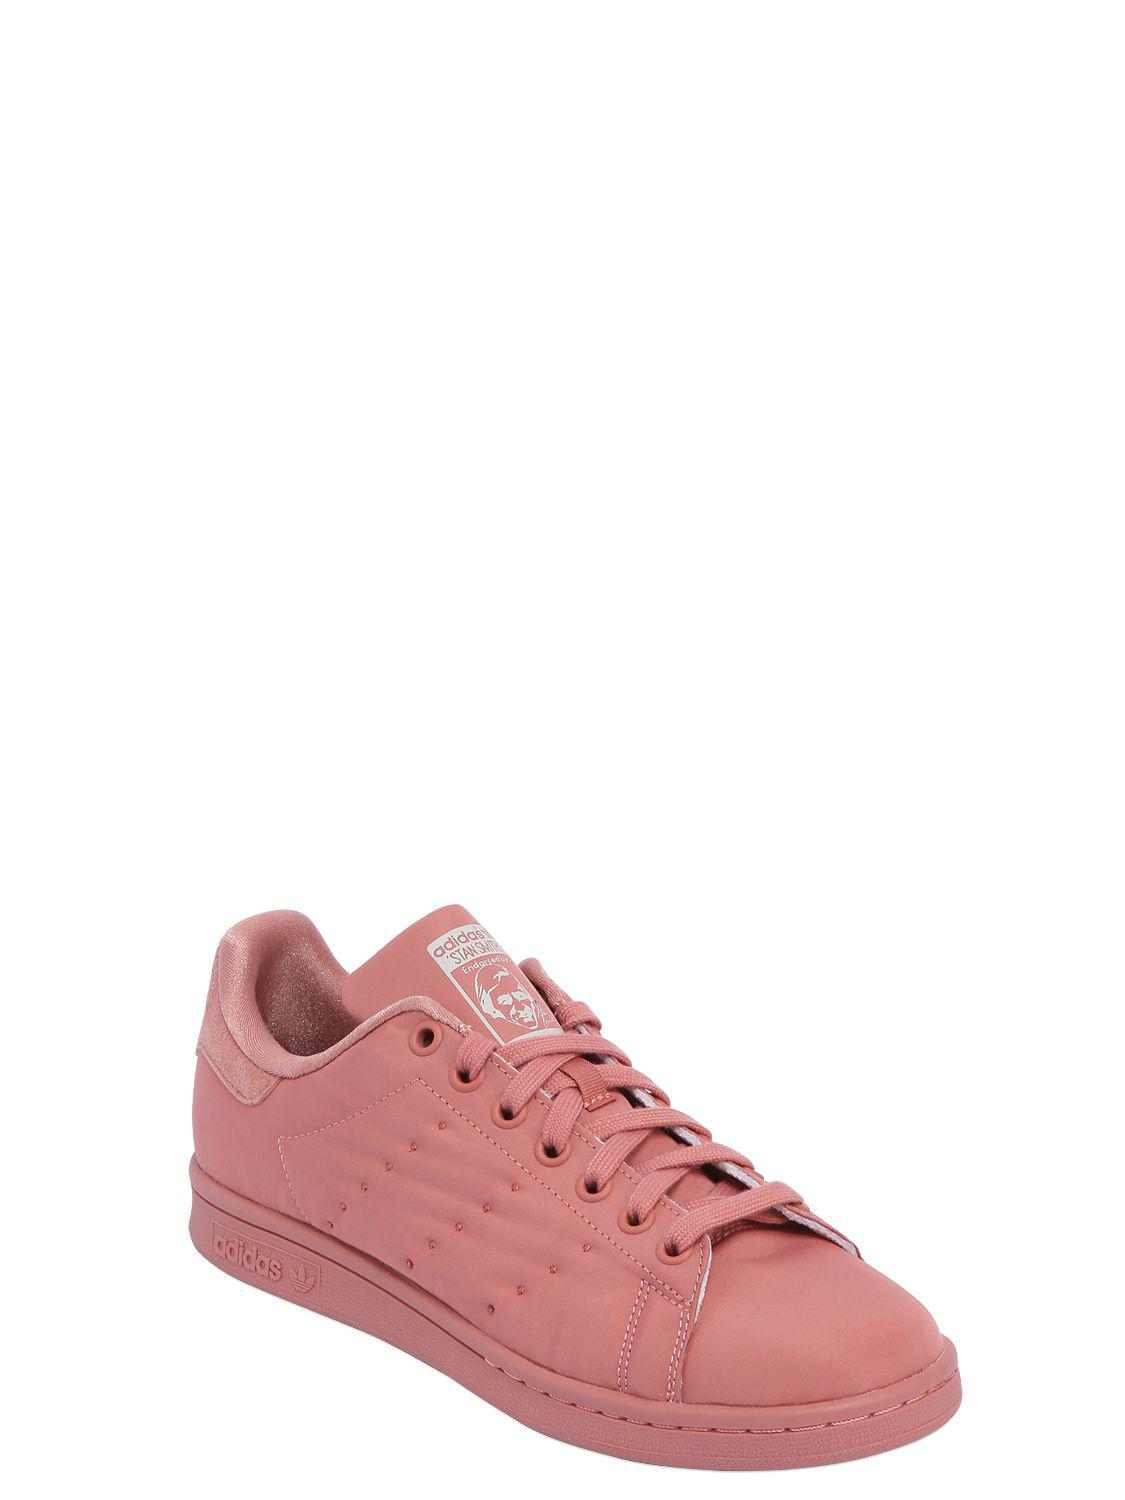 adidas STAN SMITH PADDED SATIN SNEAKERS Shop Offer Cheap Price Discount Eastbay Clearance From China Classic Clearance For Nice YgeSsXNLi